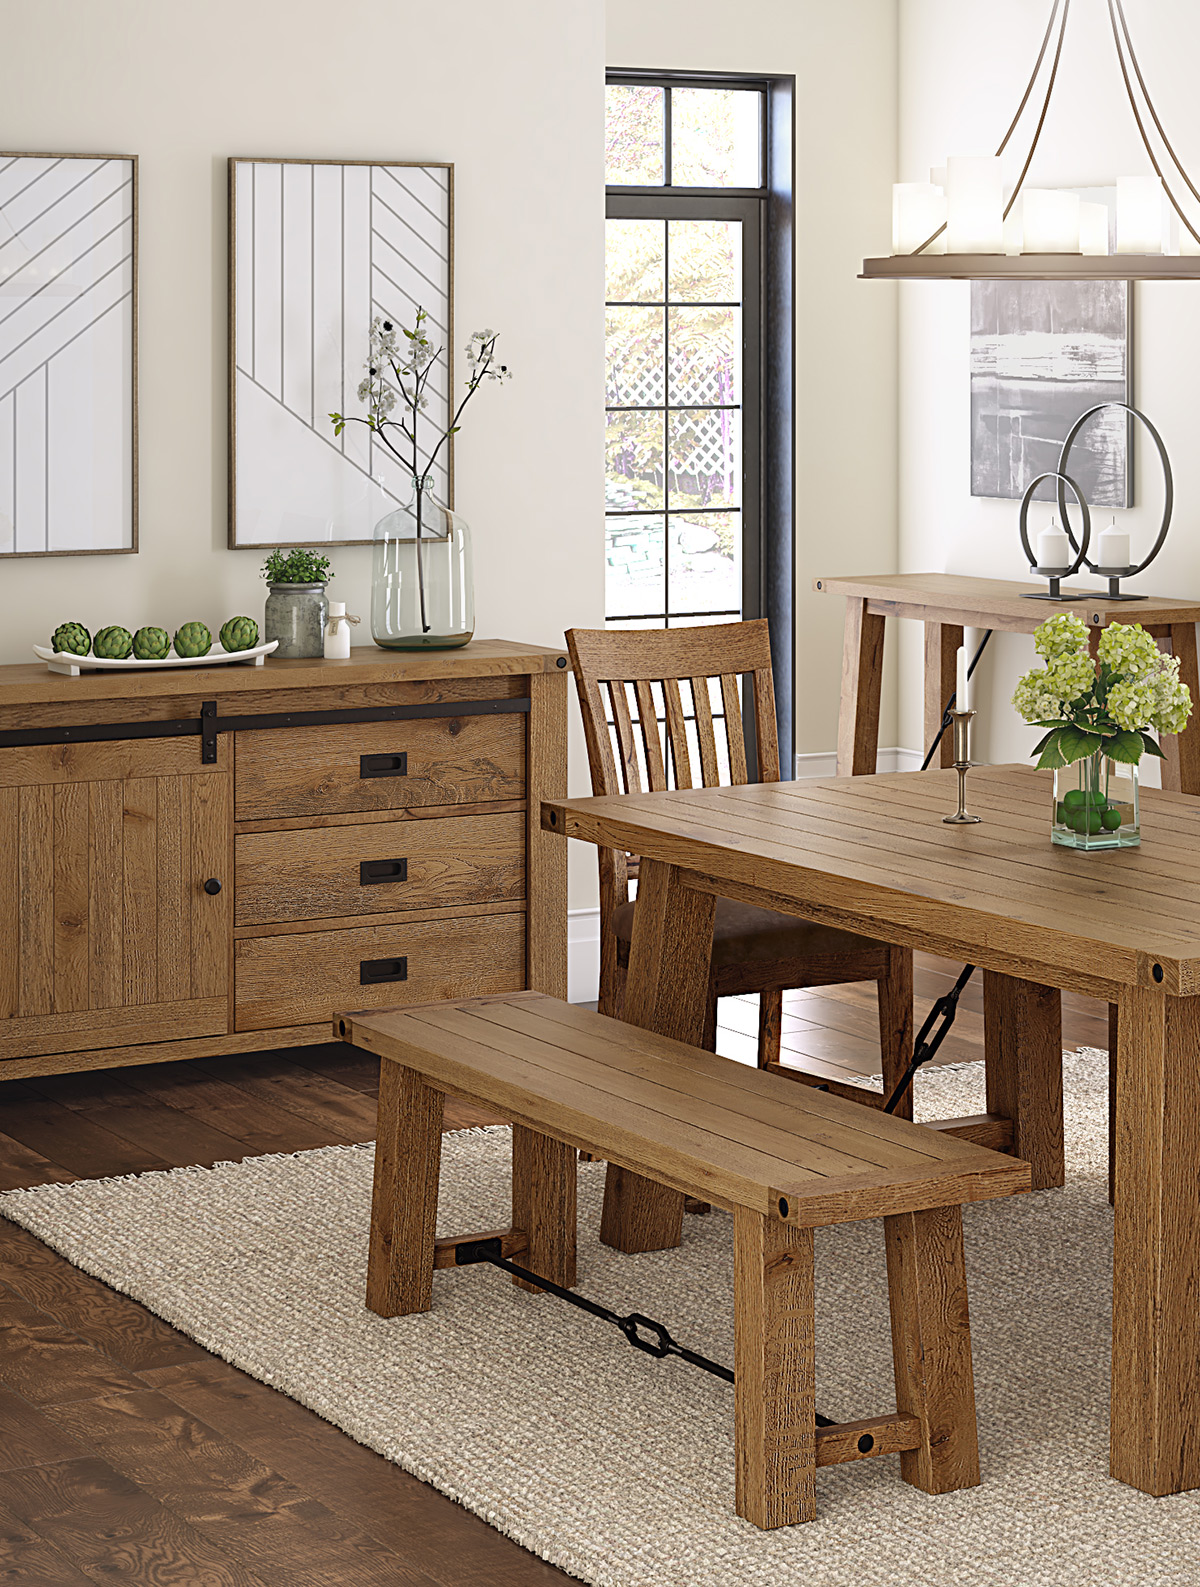 Dining Room Design: Storage and Display Options - Schneiderman\'s ...